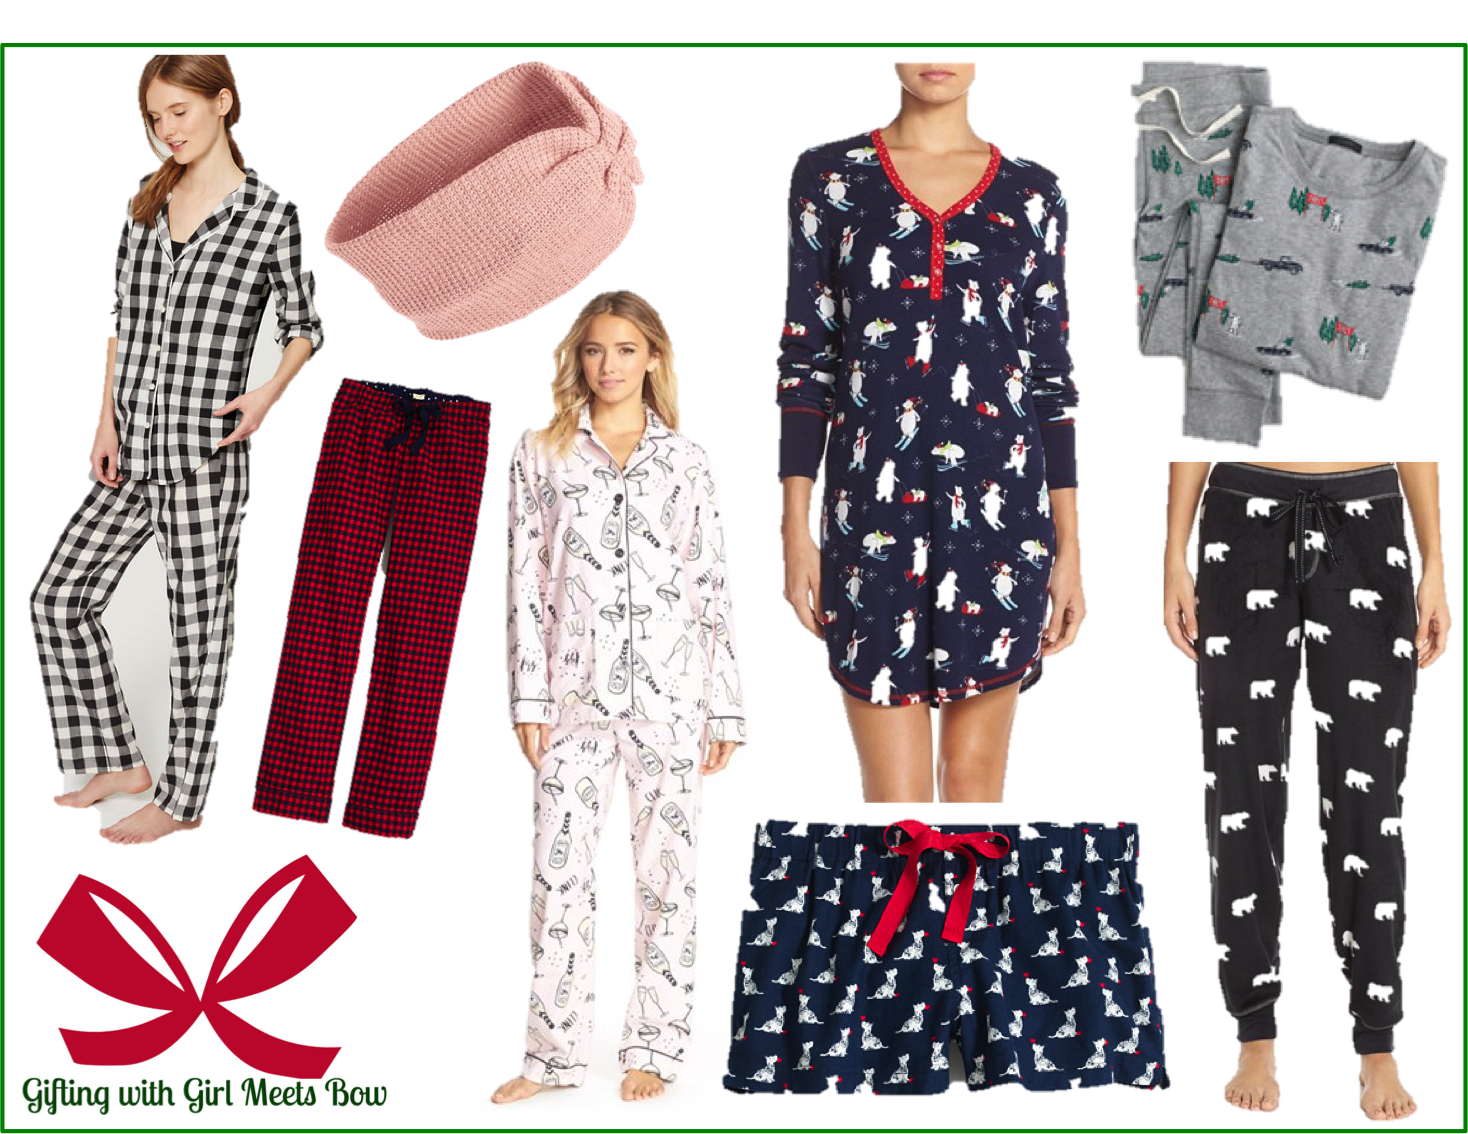 Gifting with Girl Meets Bow: Christmas PJ's